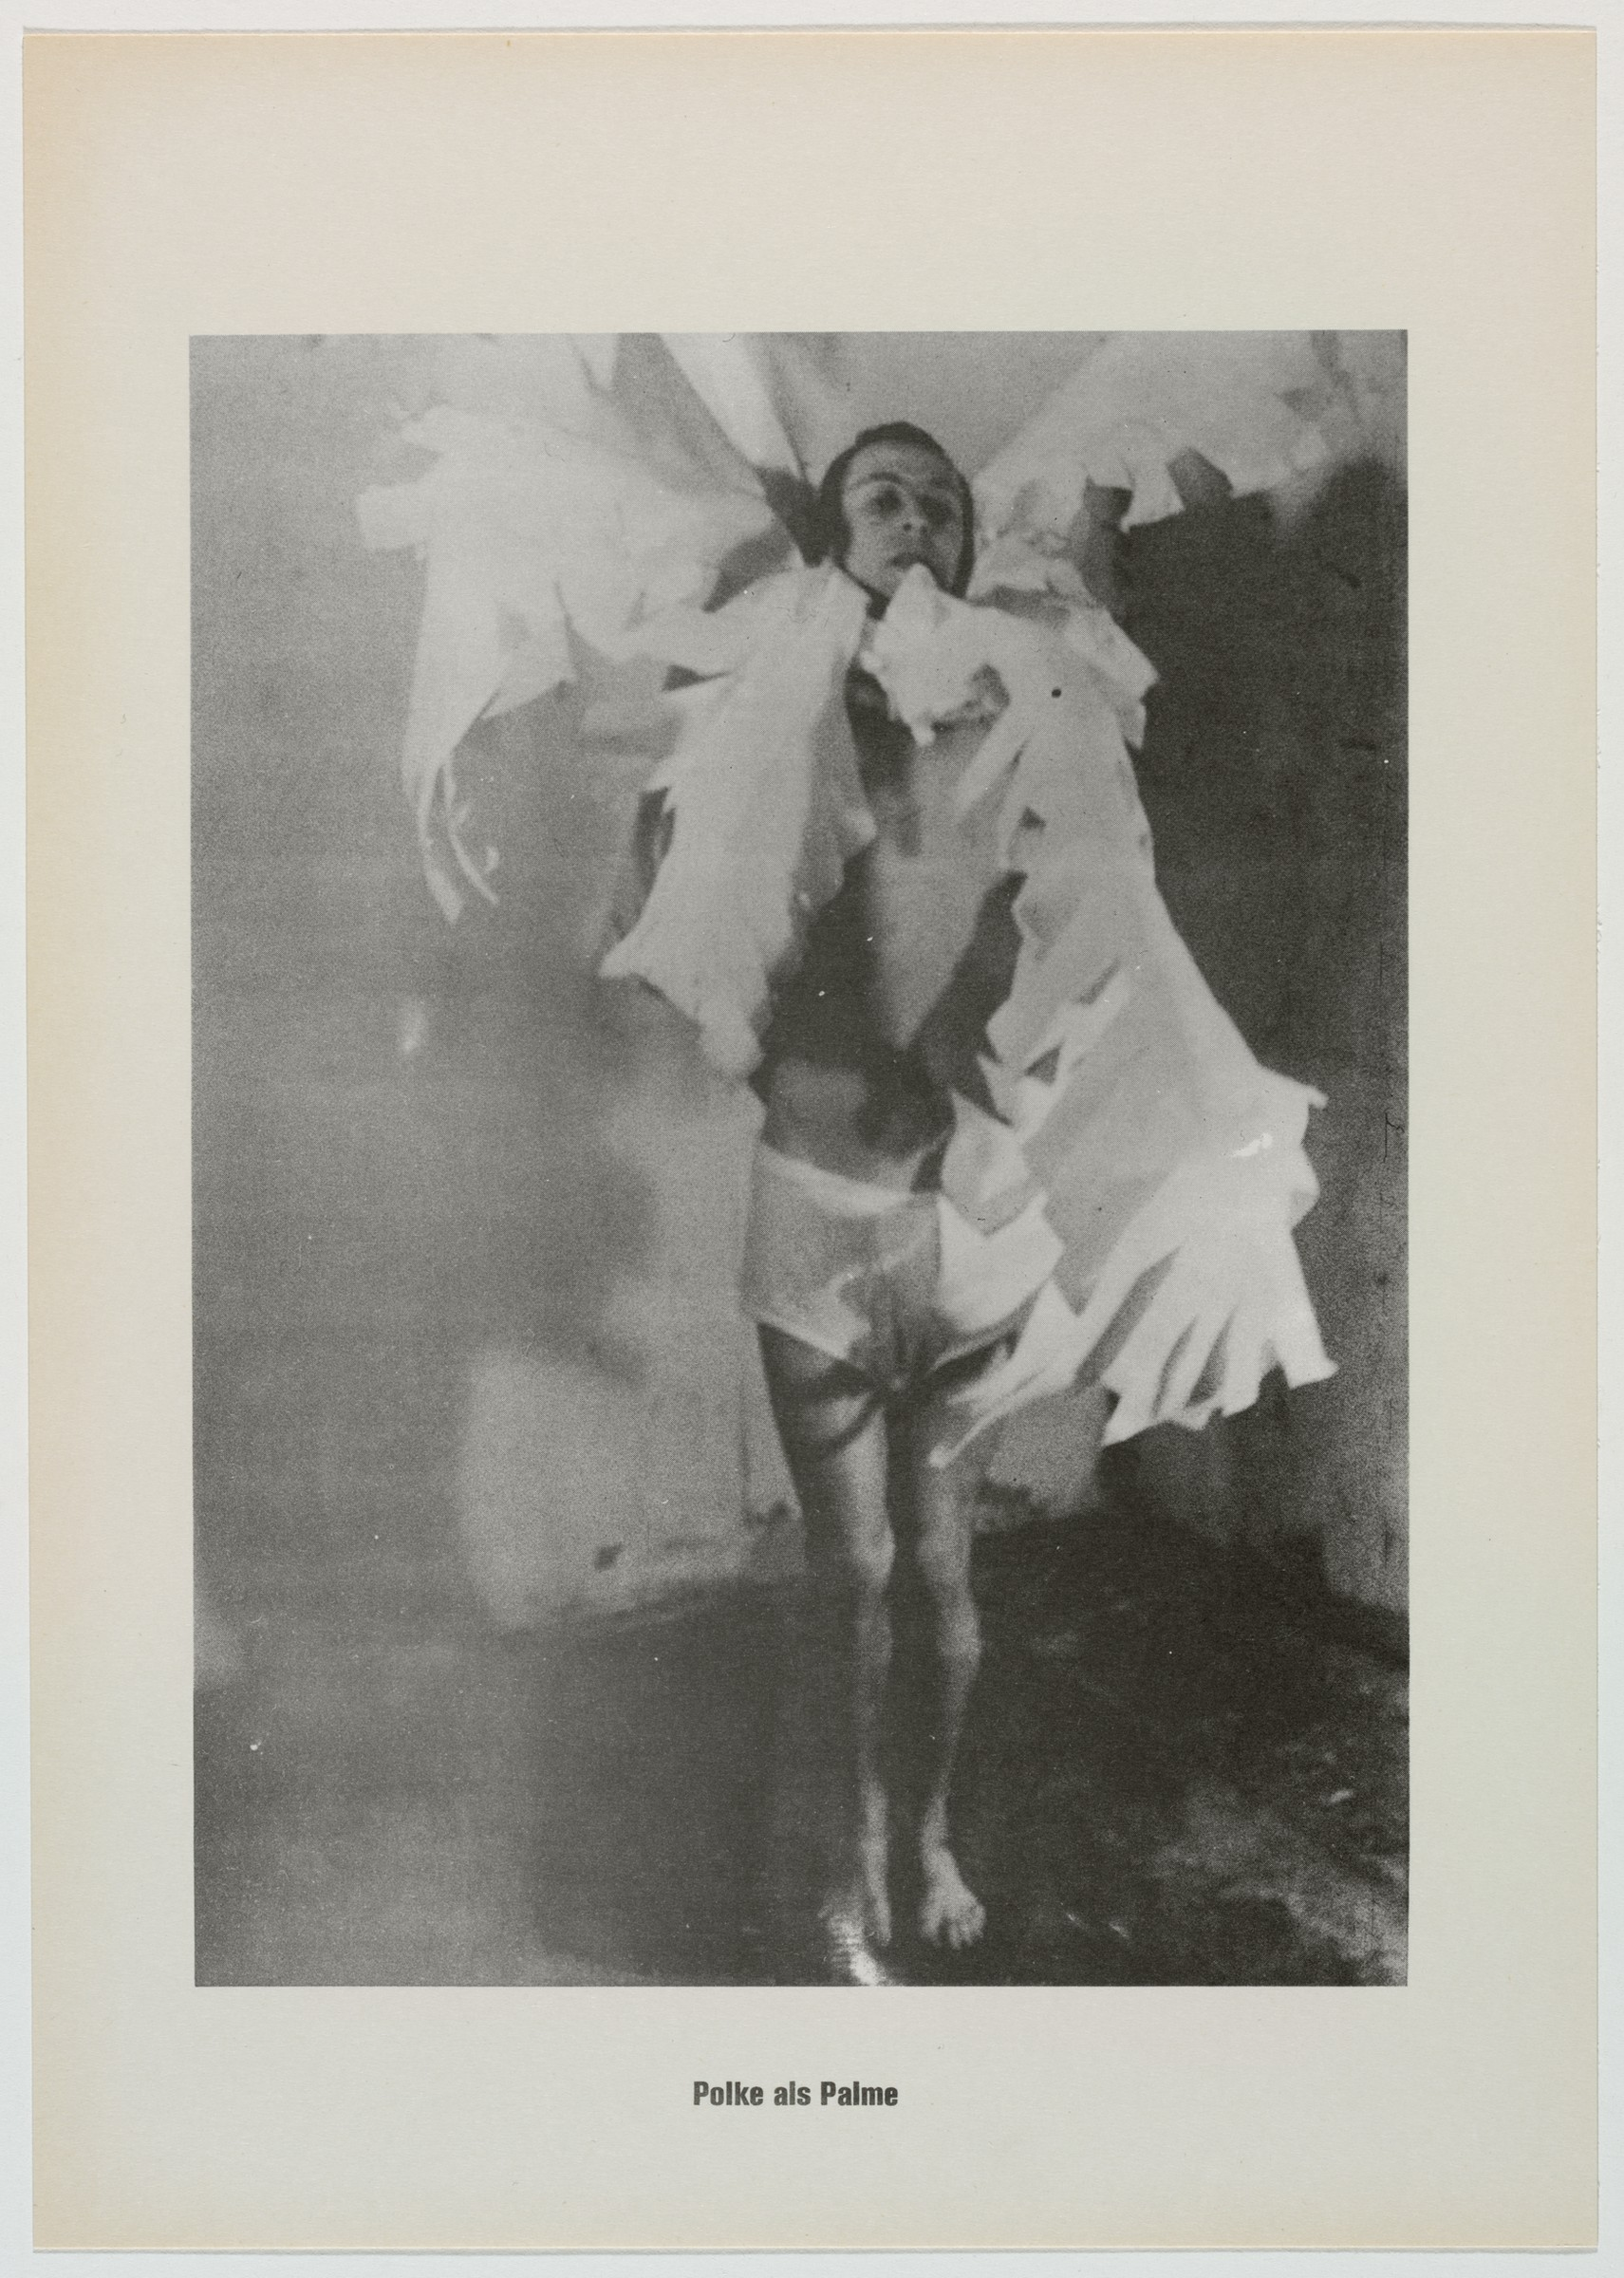 """This black and white lithograph shows a man with dark hair standing in a room barefoot on a dark floor with lighter walls behind and to the right. His head is slightly raised, and he is wearing white shorts with large cutouts of palm fronds around his neck. Text at the bottom reads """"Polke als Palme."""""""